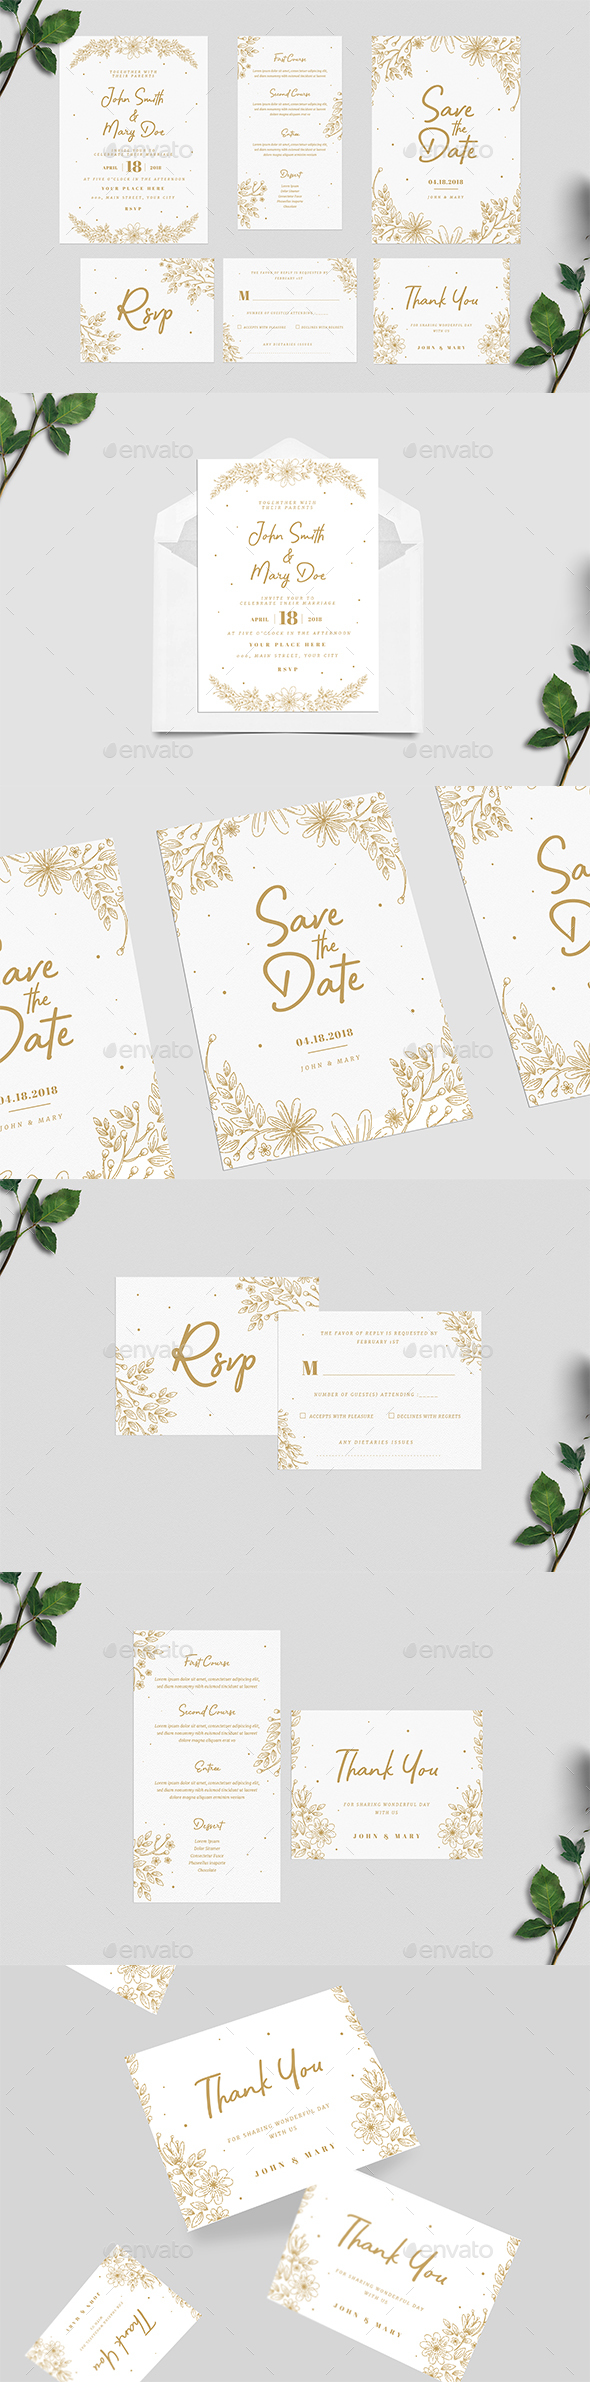 Gold Floral Wedding Invitation Suite - Weddings Cards & Invites